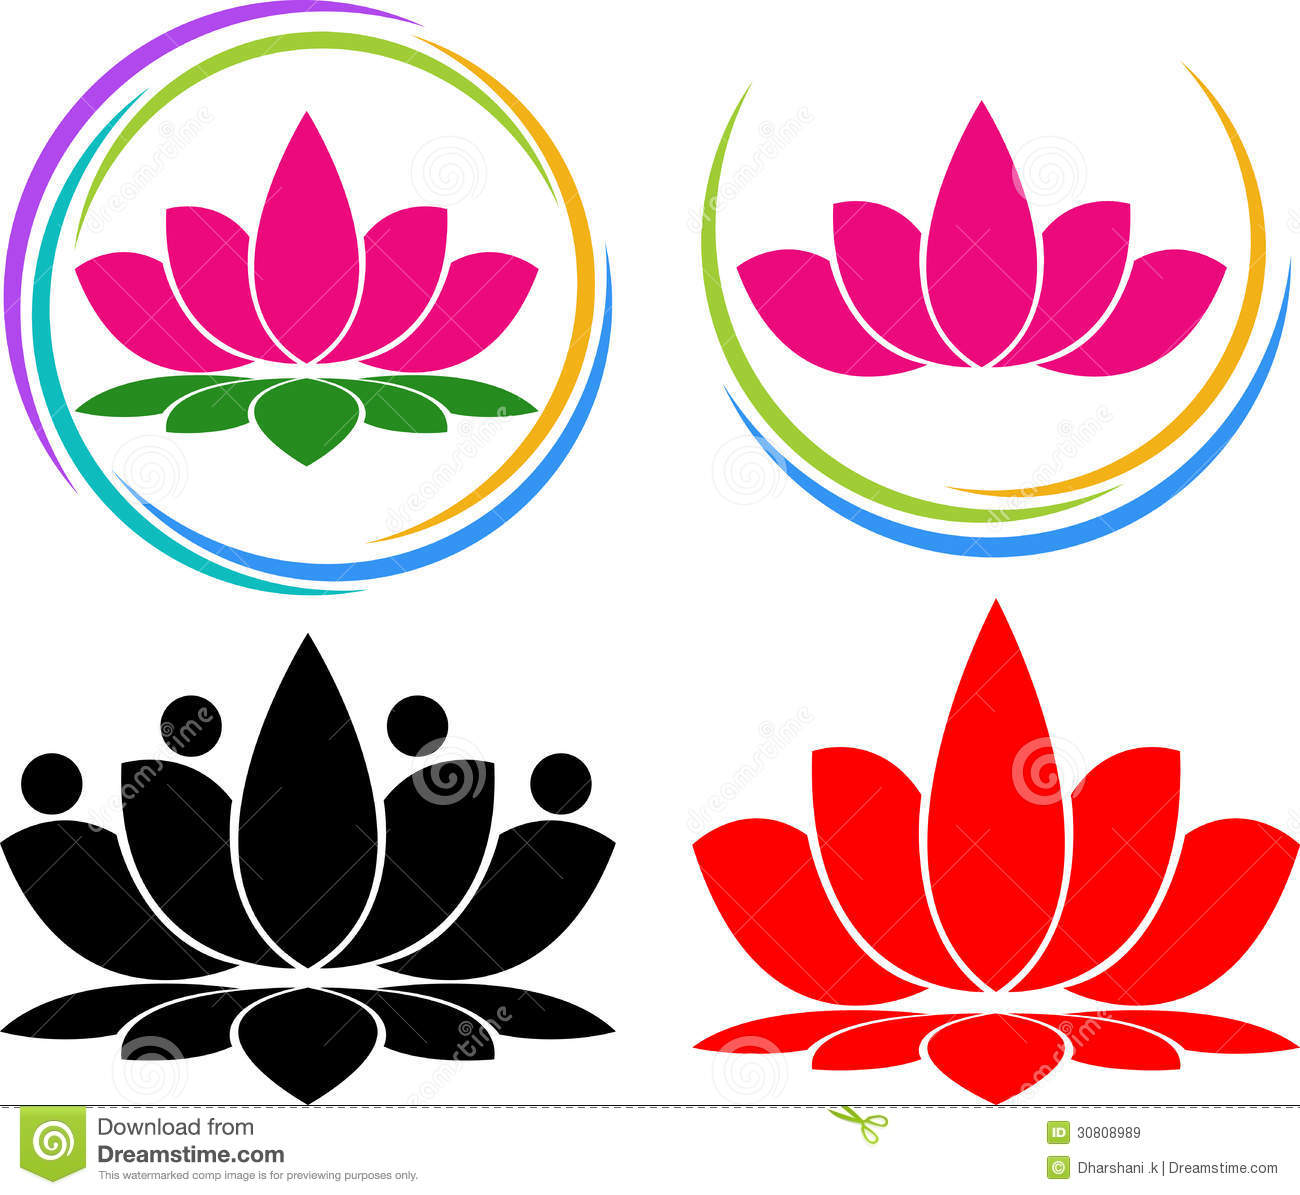 Illustration art of a lotus logo with isolated background.